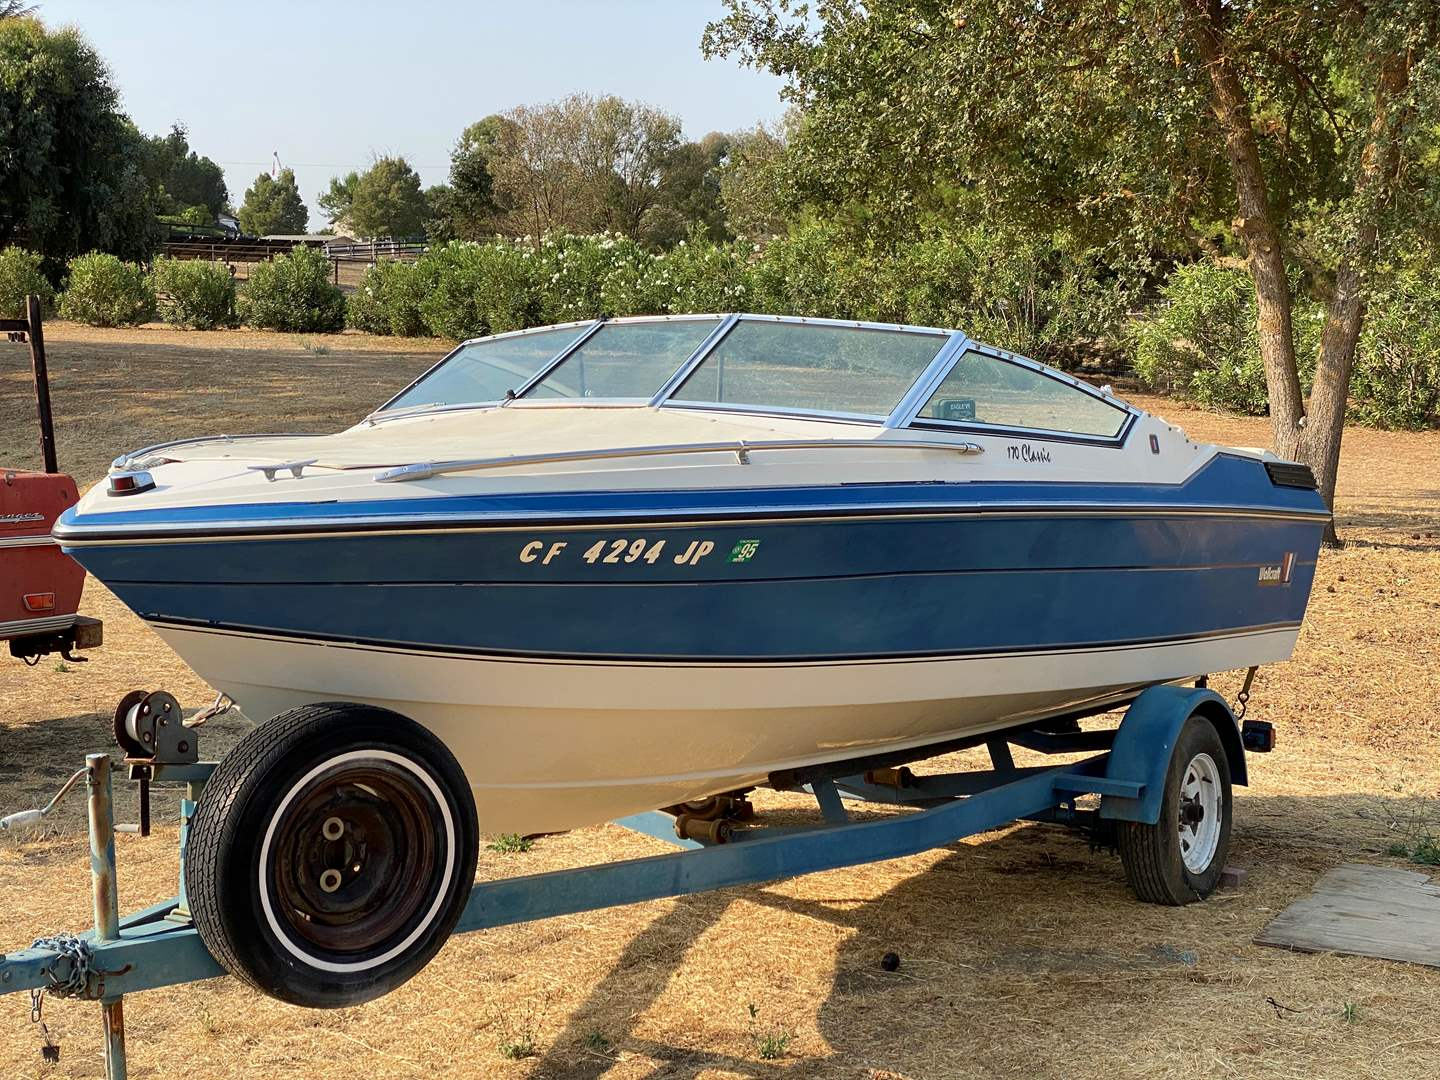 Lot # 118 - WELLCRAFT BOAT WITH TRAILER & MOTOR 170 (main image)